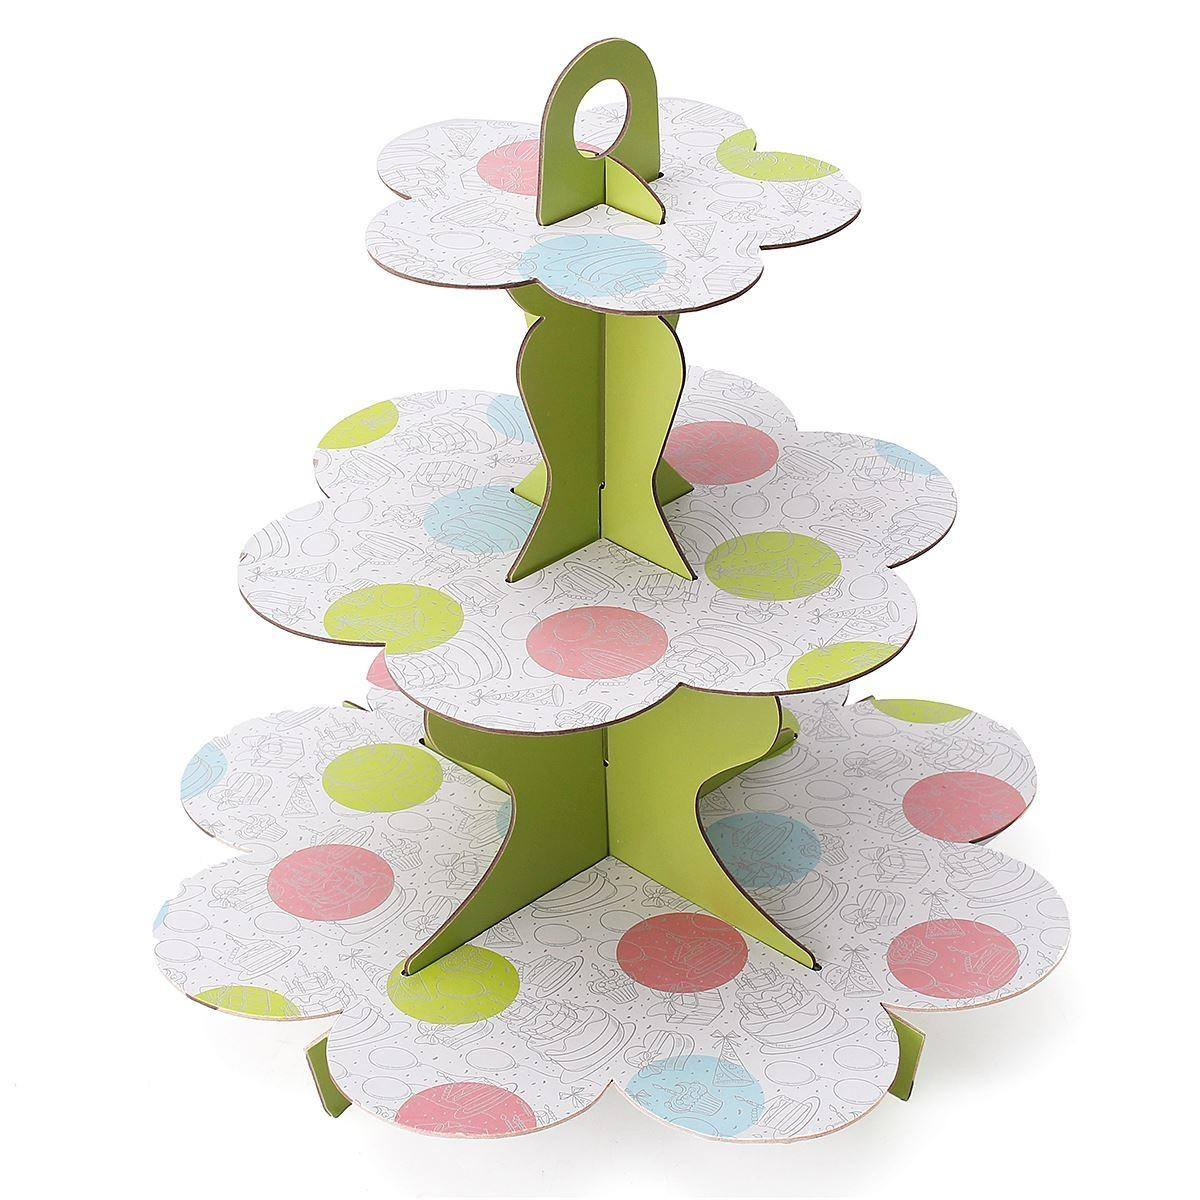 Diy Tiers Paper Cupcake Stand Dessert Candy Storage